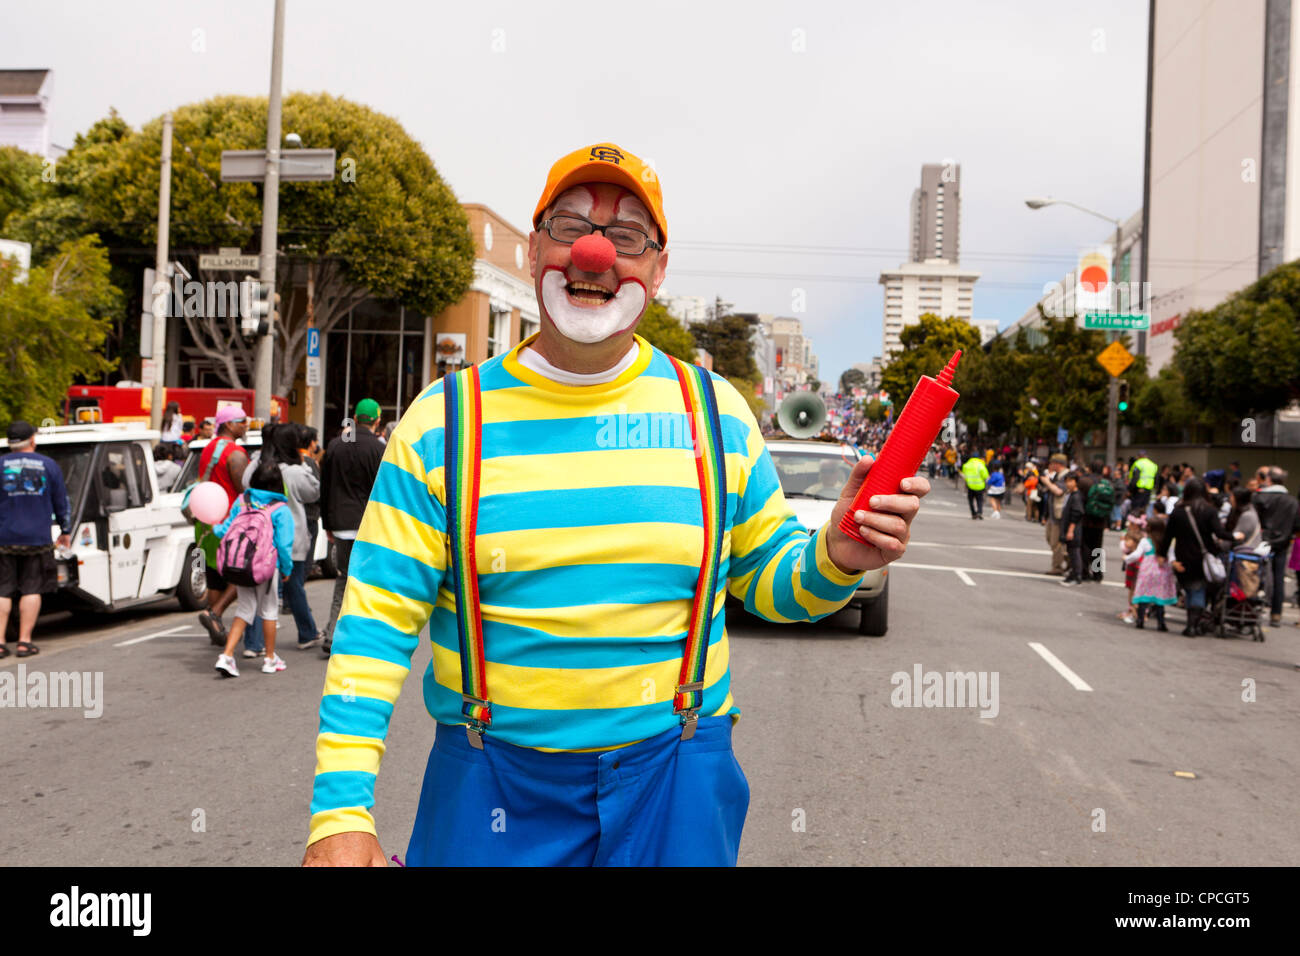 Kenny the Clown at a parade - Stock Image